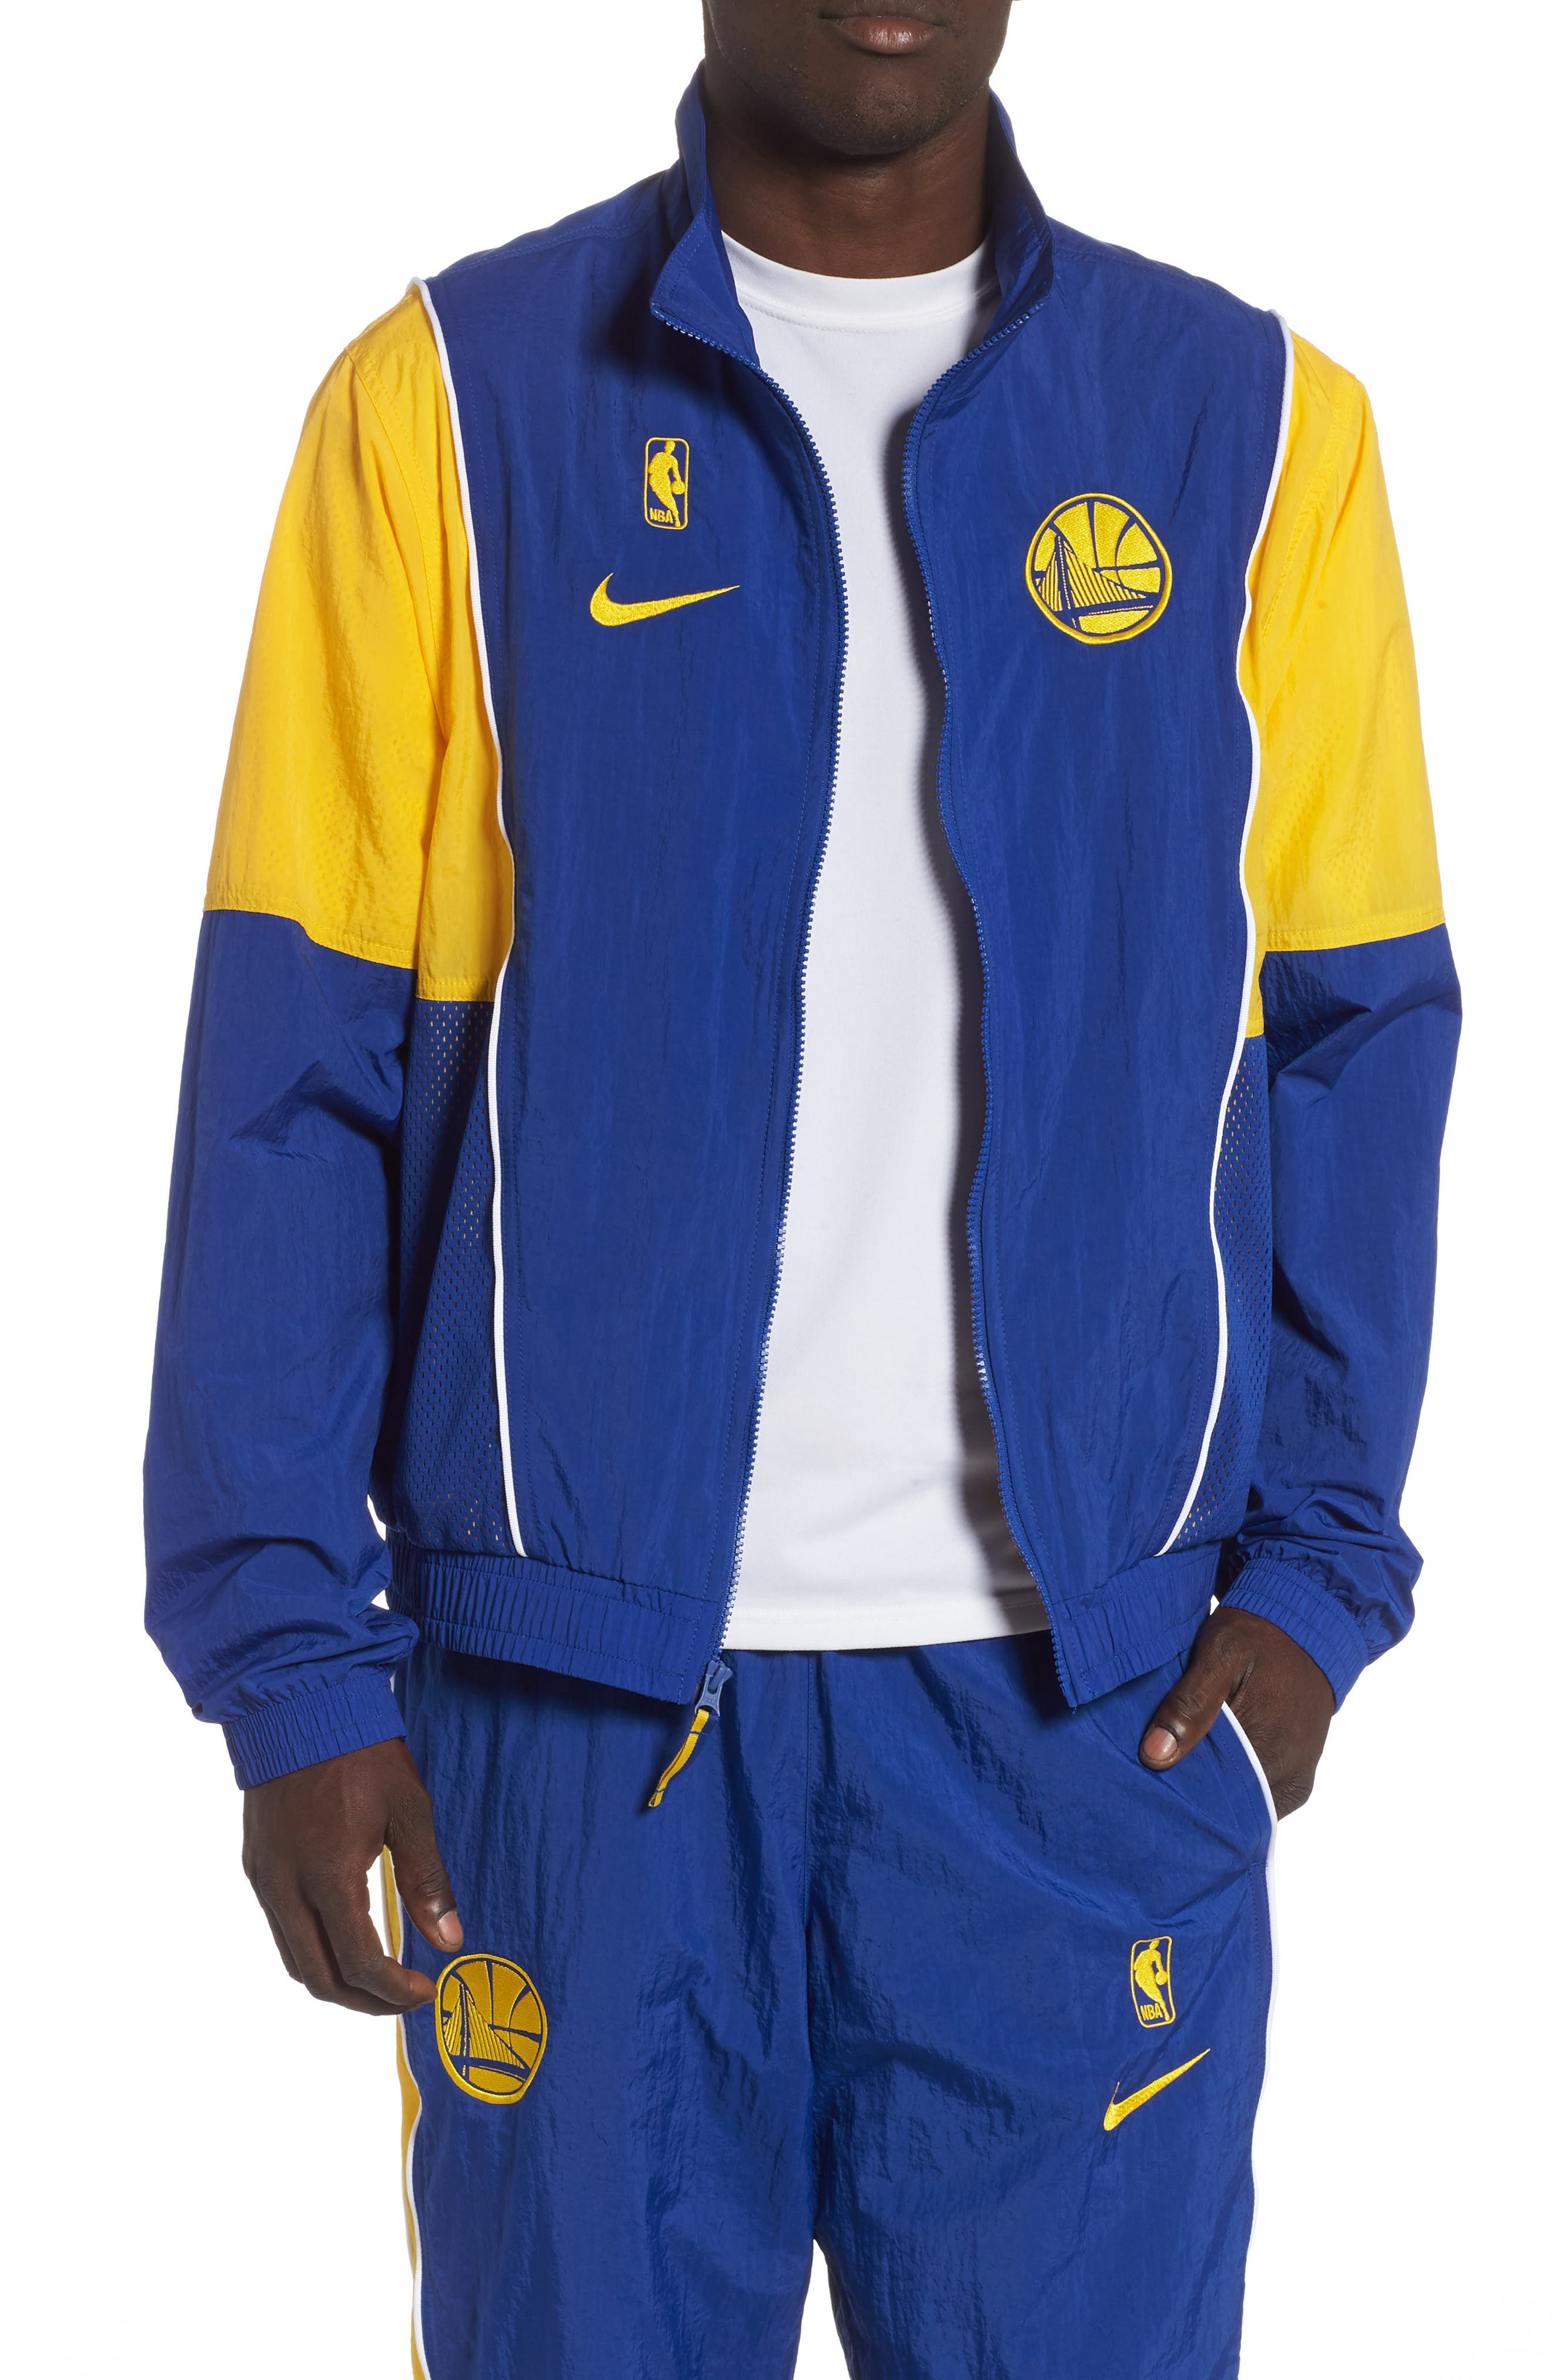 Golden State Warriors Track Jacket,                         Main,                         color, RUSH BLUE/ AMARILLO/ WHITE